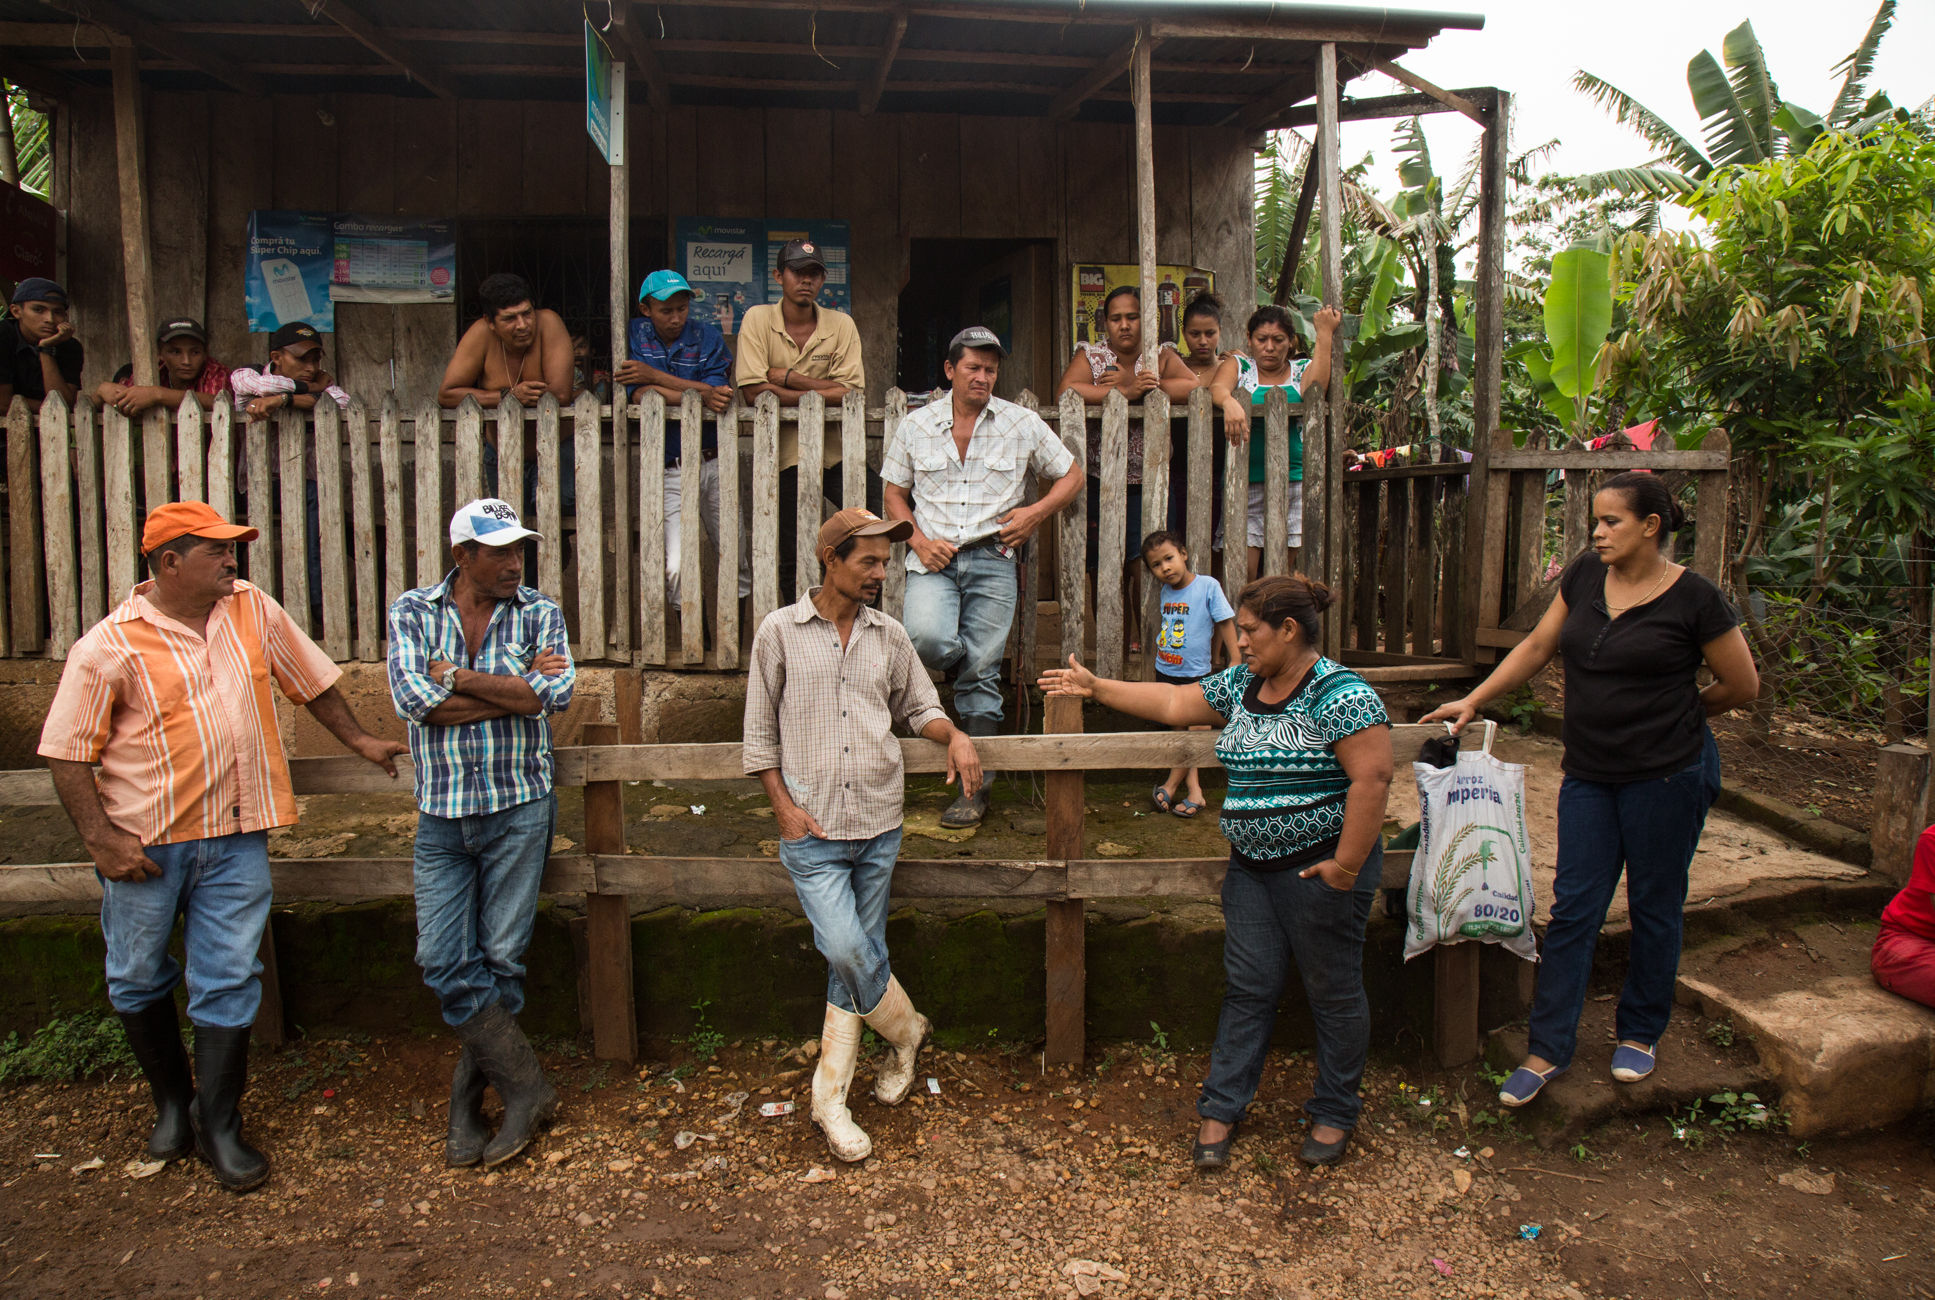 """Francisca """"Chica"""" Ramirez, an anti canal leader among campesinos in El Roble, Rio San Juan, gathers local campesinos together to inspire their attendance at the upcoming protest in El Tule."""